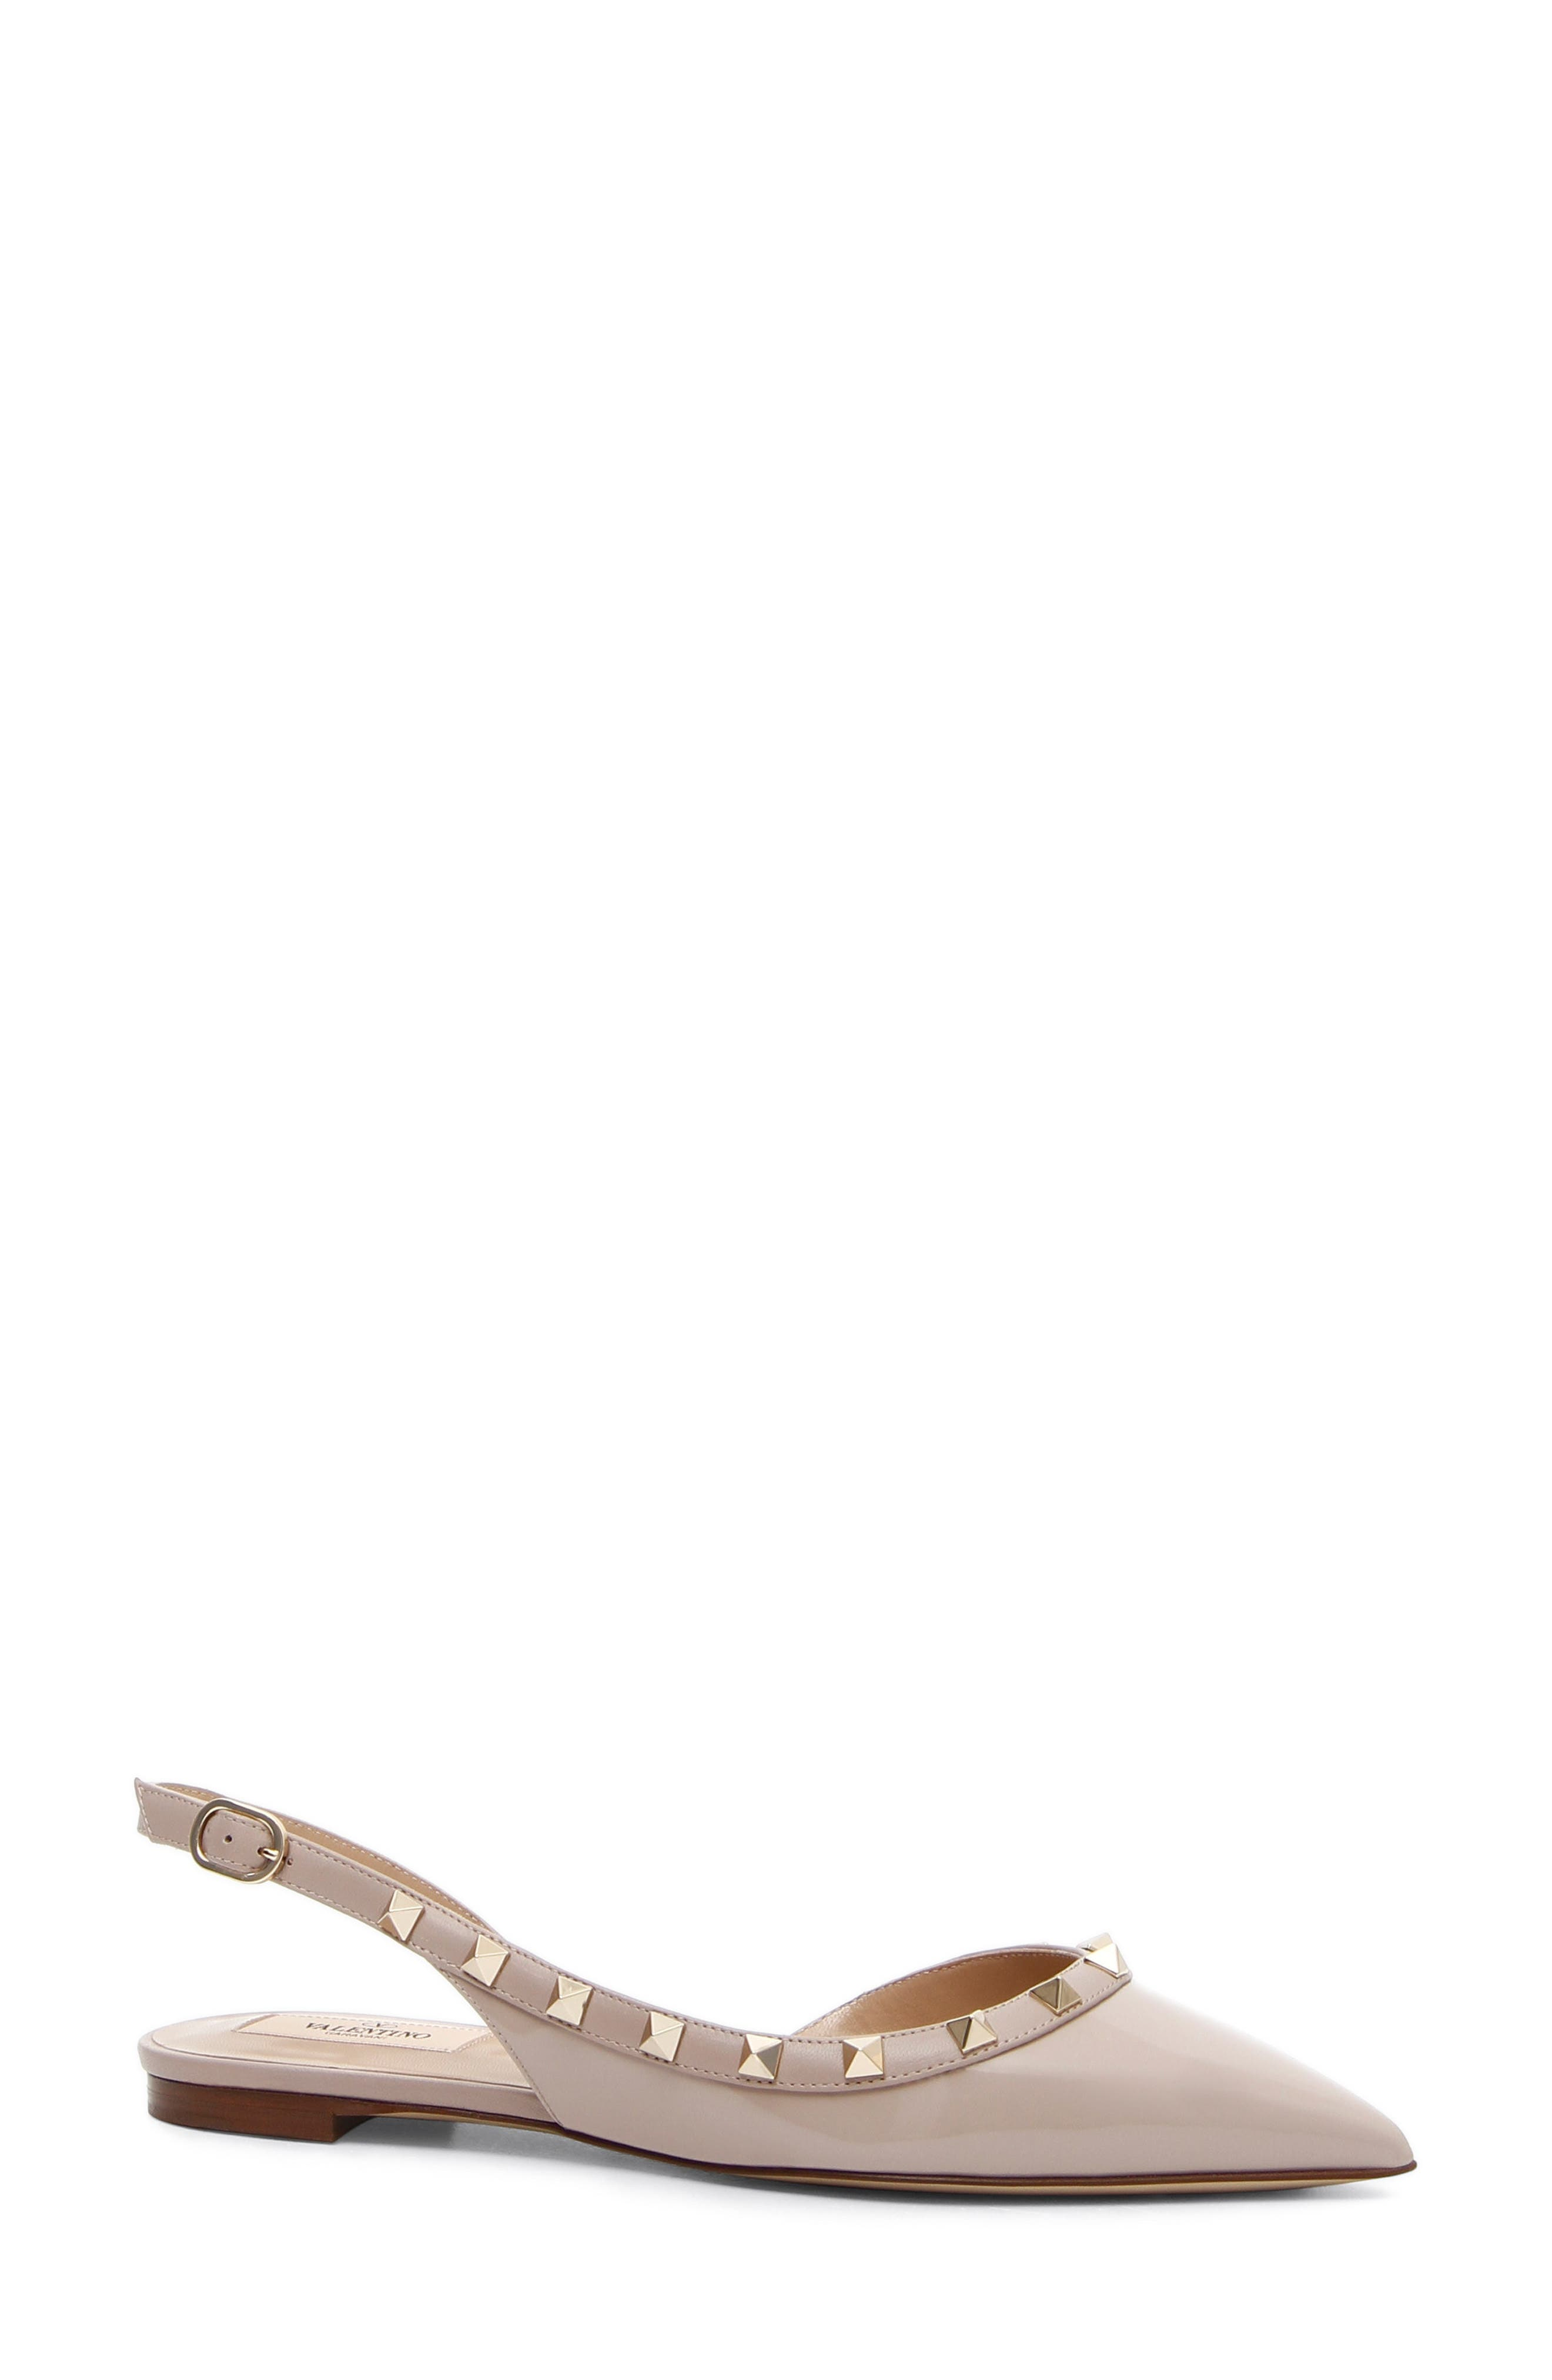 Rockstud Slingback Ballerina Flat,                         Main,                         color, POUDRE LEATHER